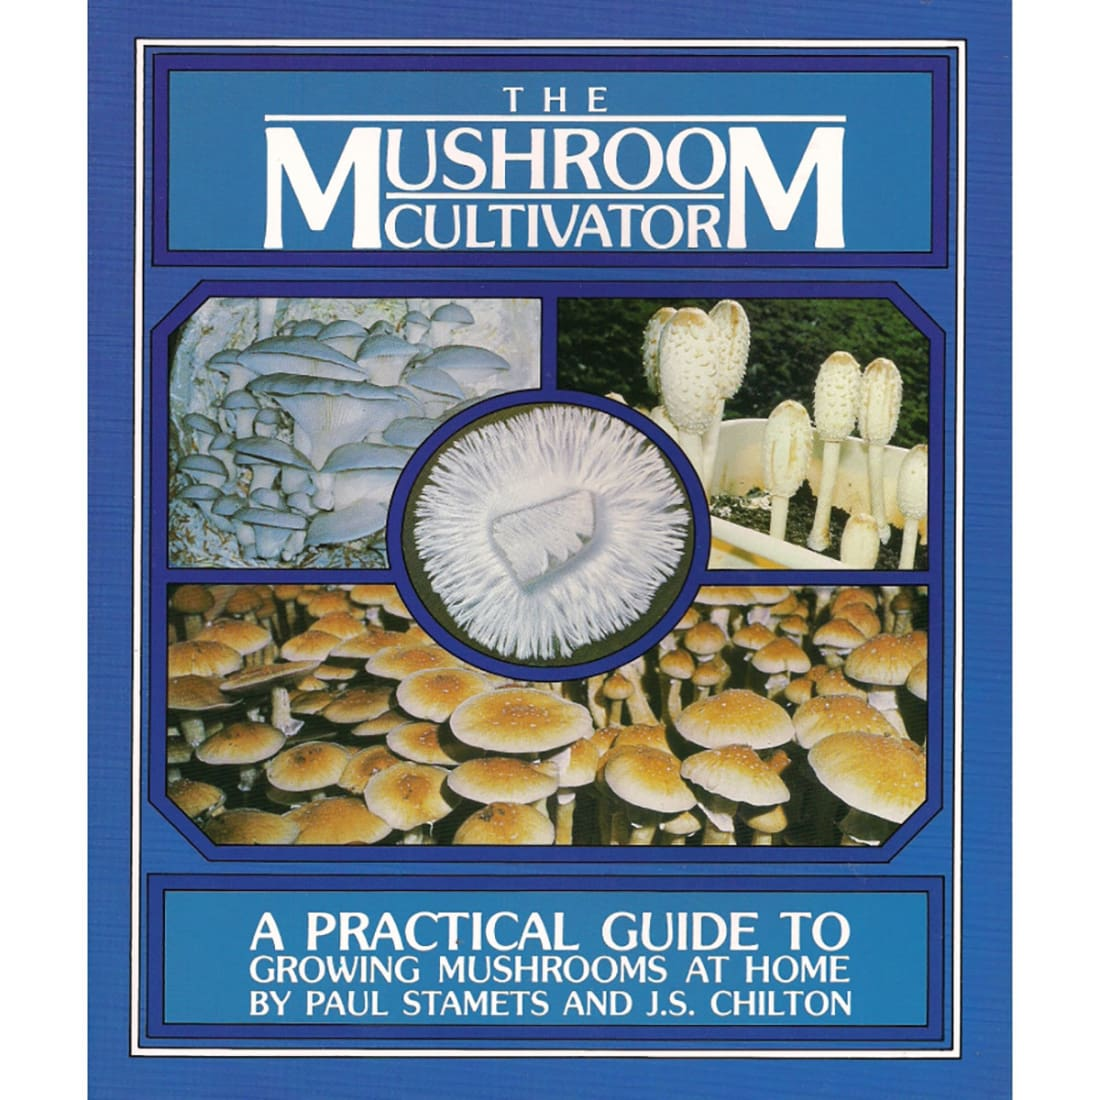 The Mushroom Cultivator by Paul Stamets and J. S. Chilton